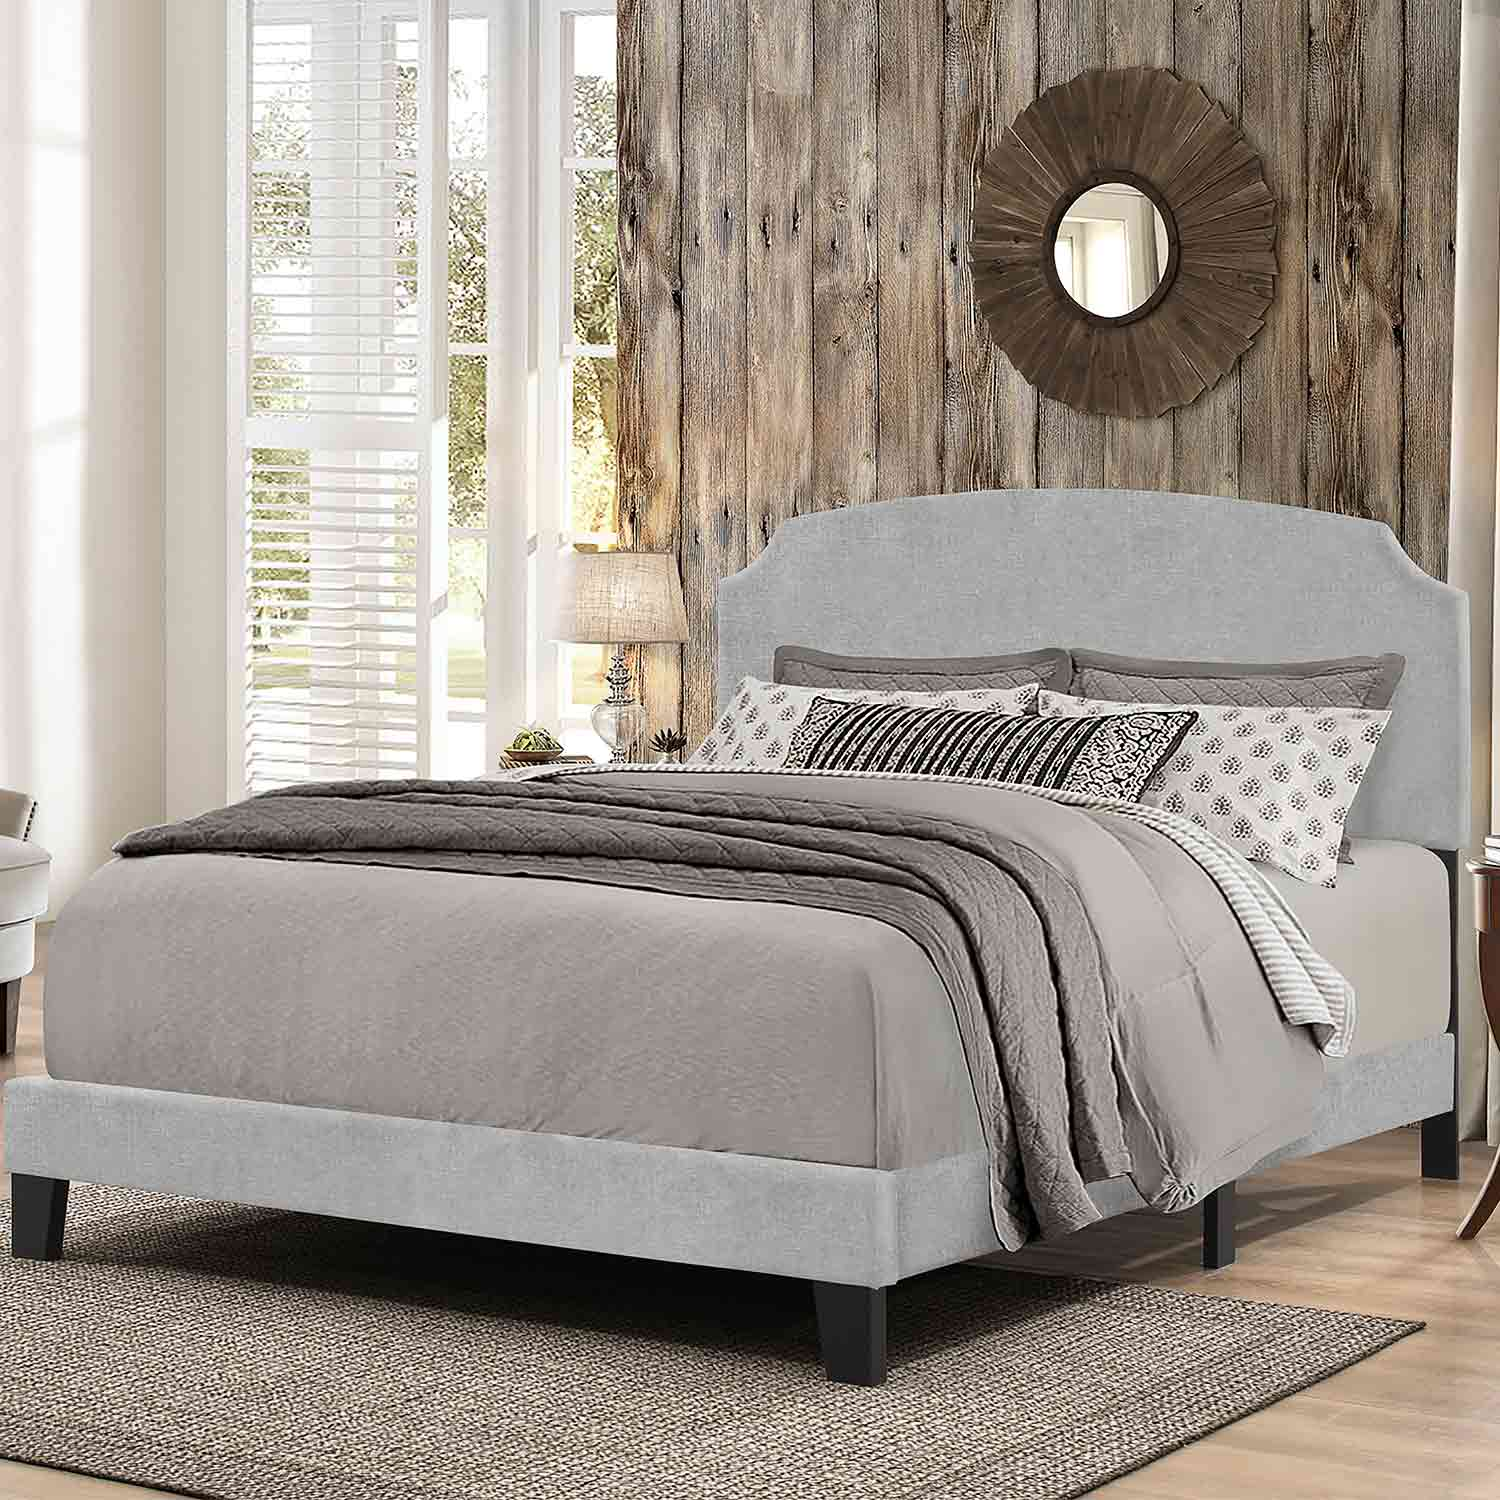 Hillsdale Desi Bed - Glacier Gray Fabric